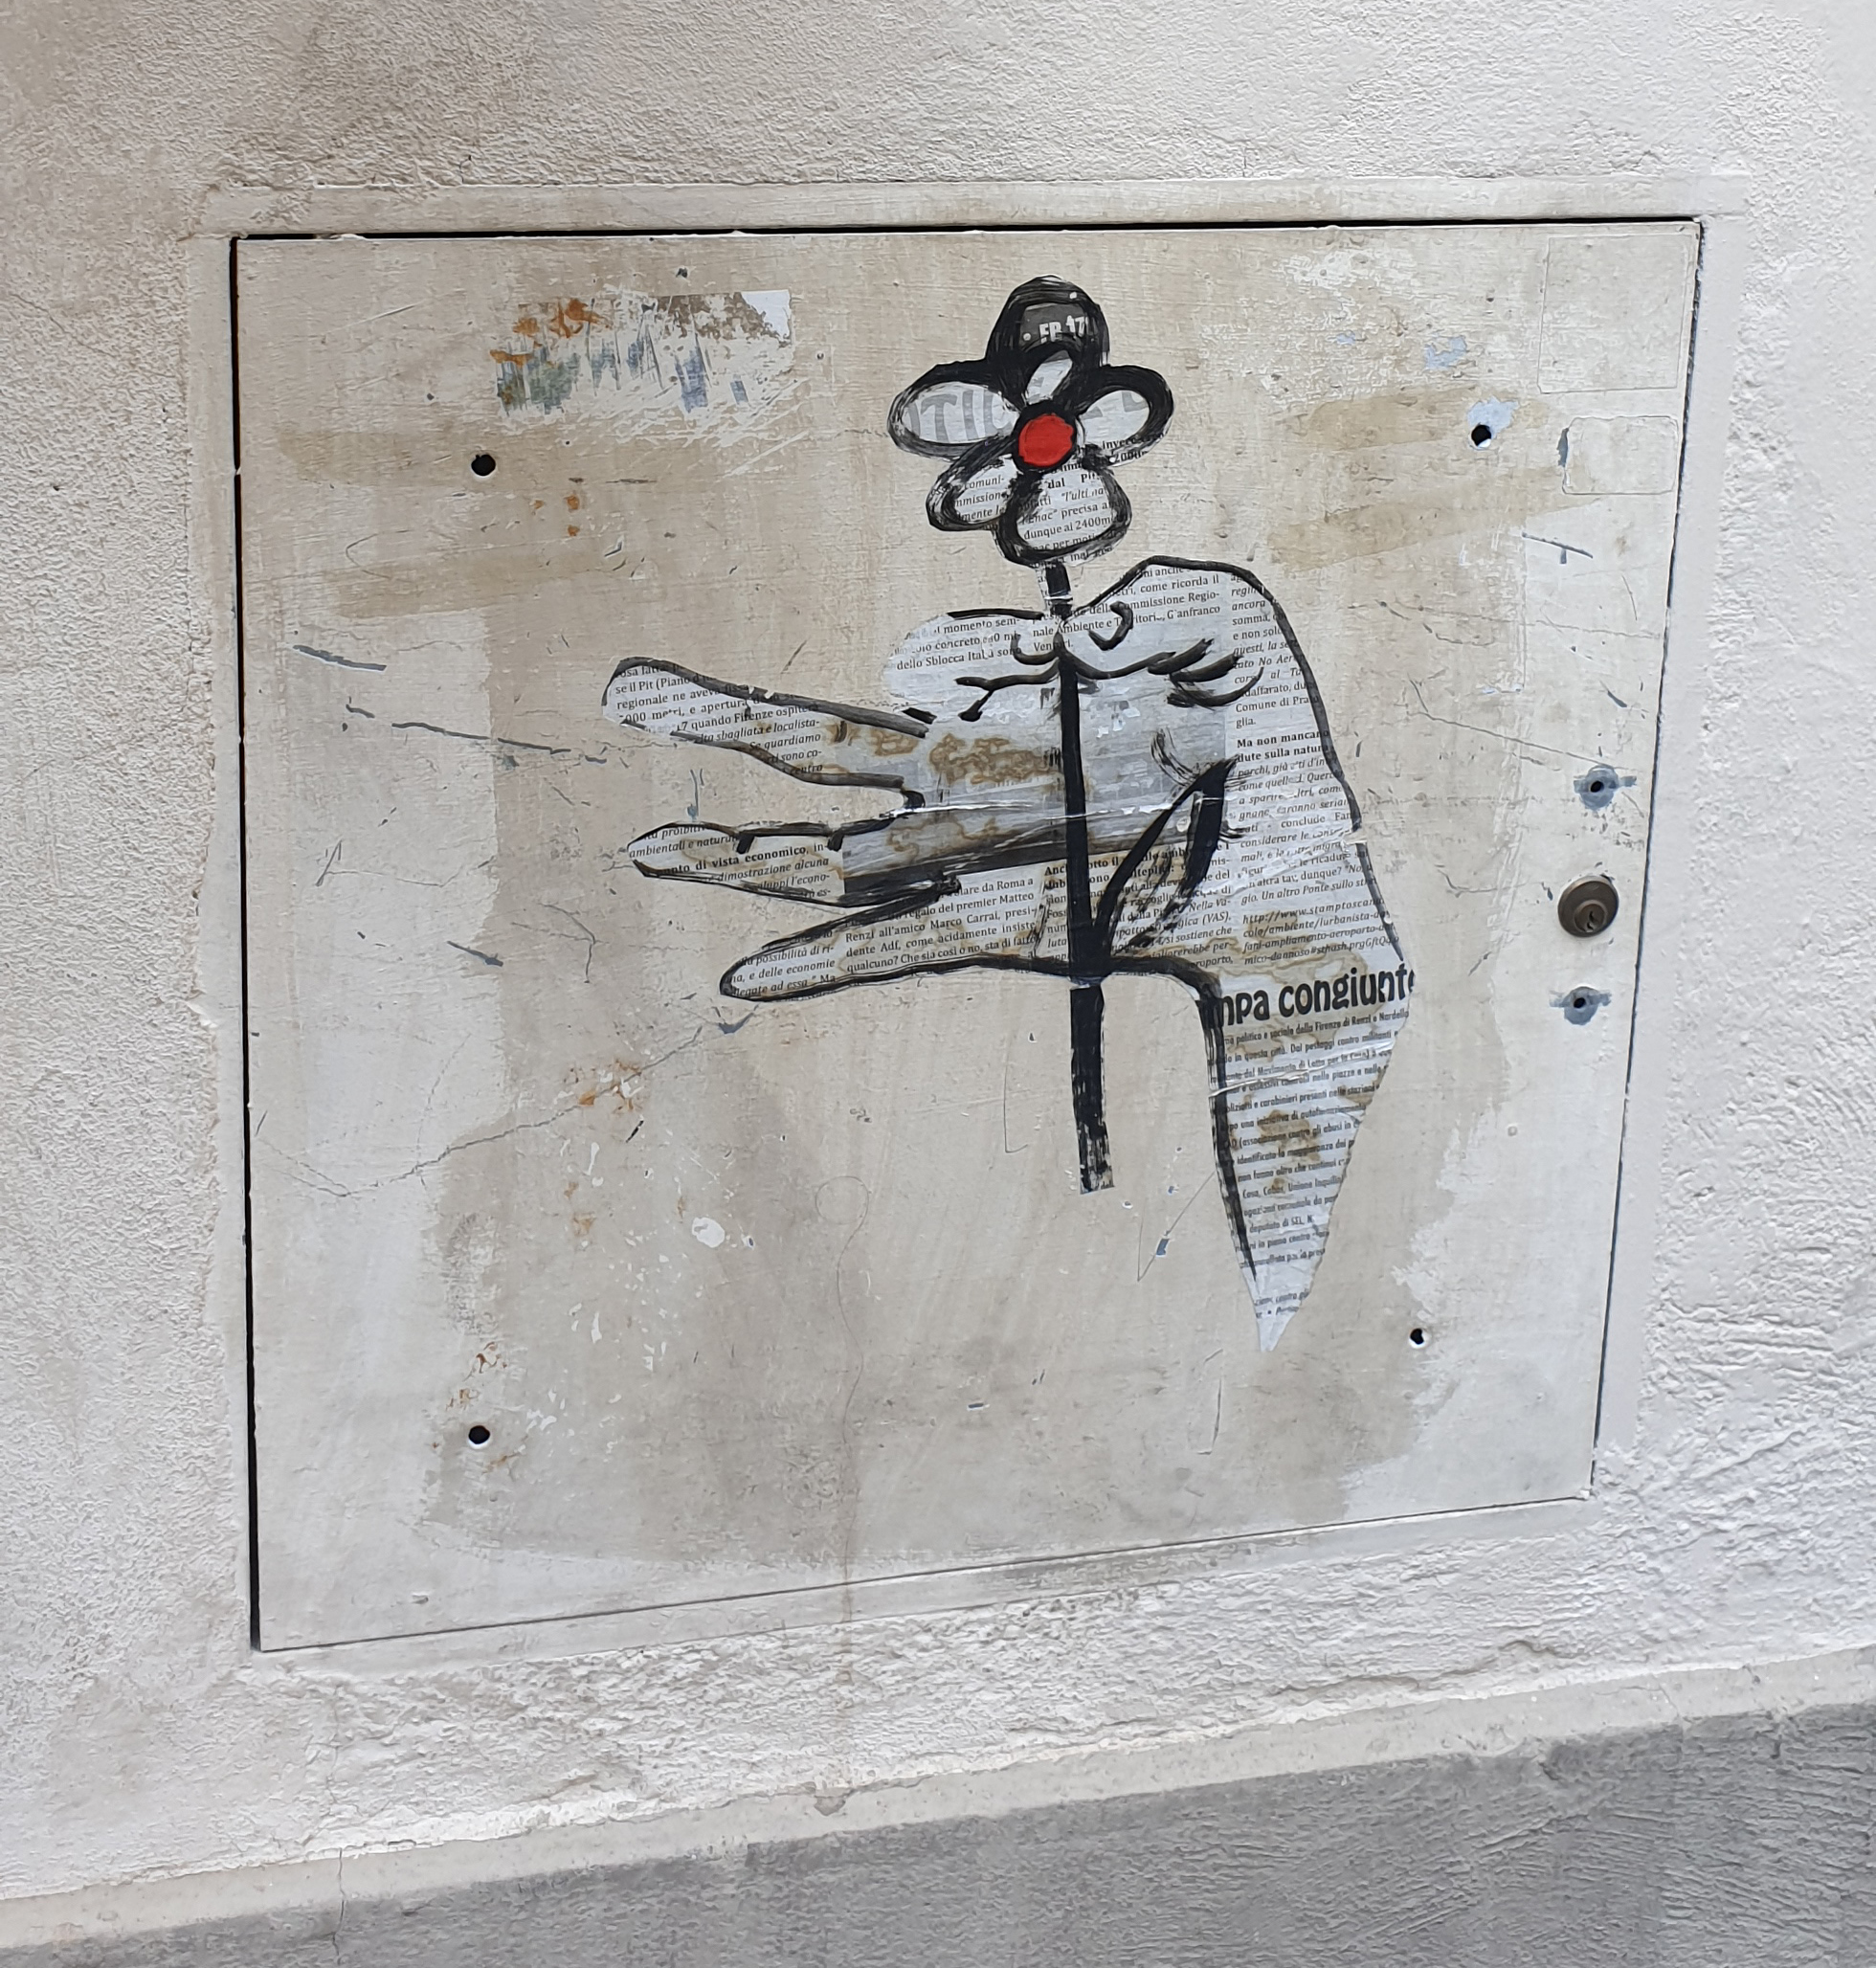 Italian Street Art … not to be confused with graffiti